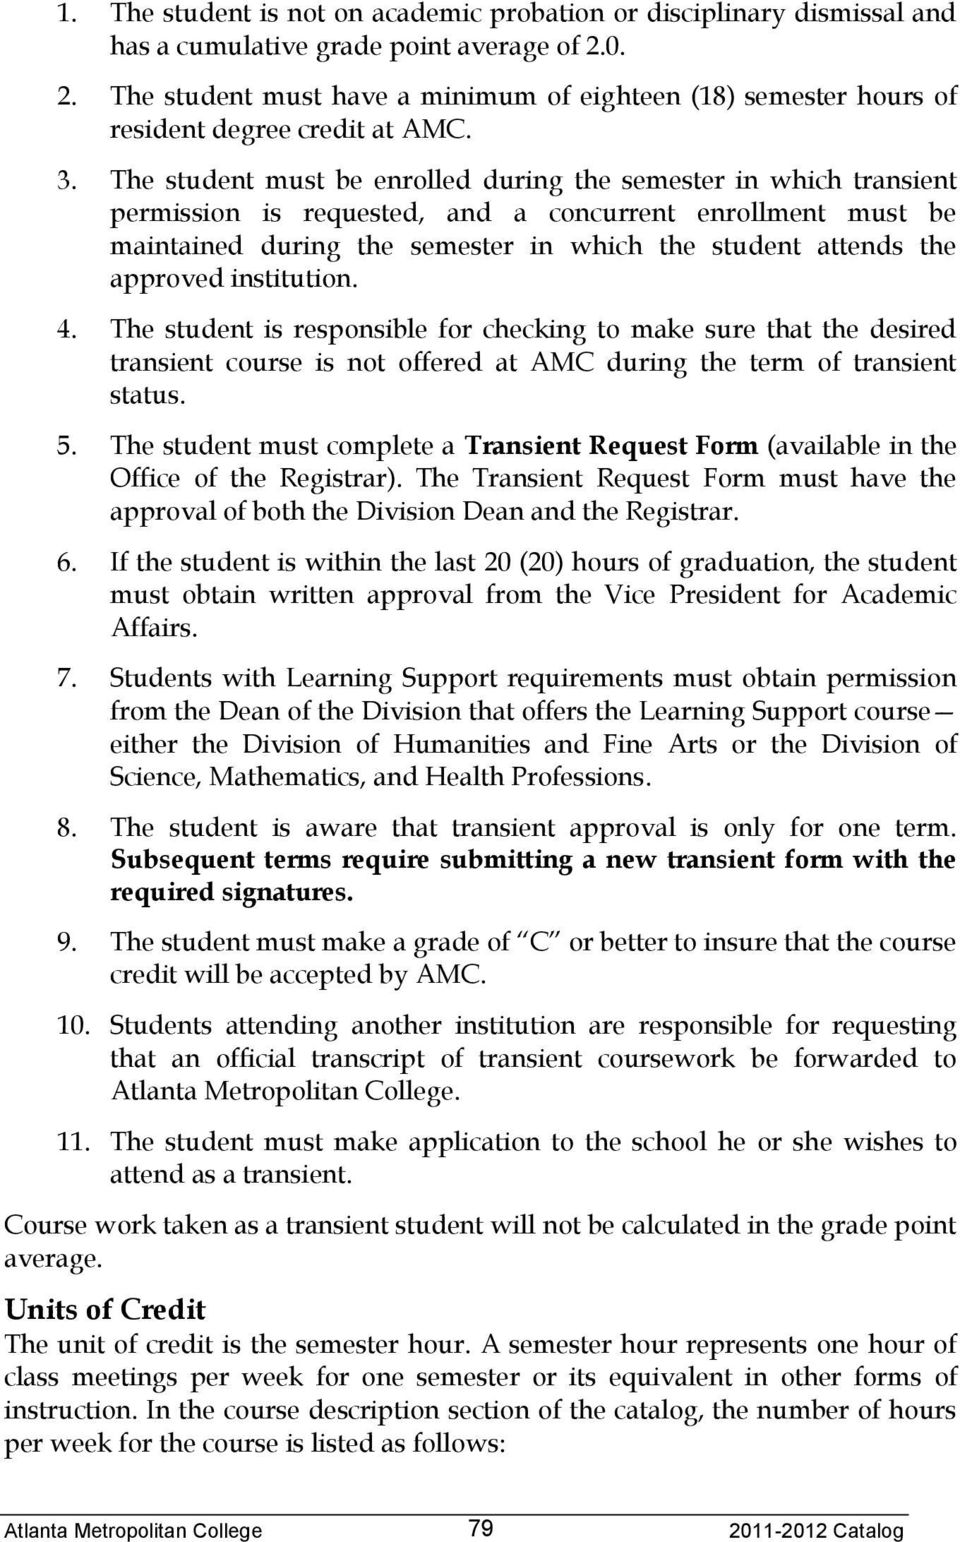 The student must be enrolled during the semester in which transient permission is requested, and a concurrent enrollment must be maintained during the semester in which the student attends the